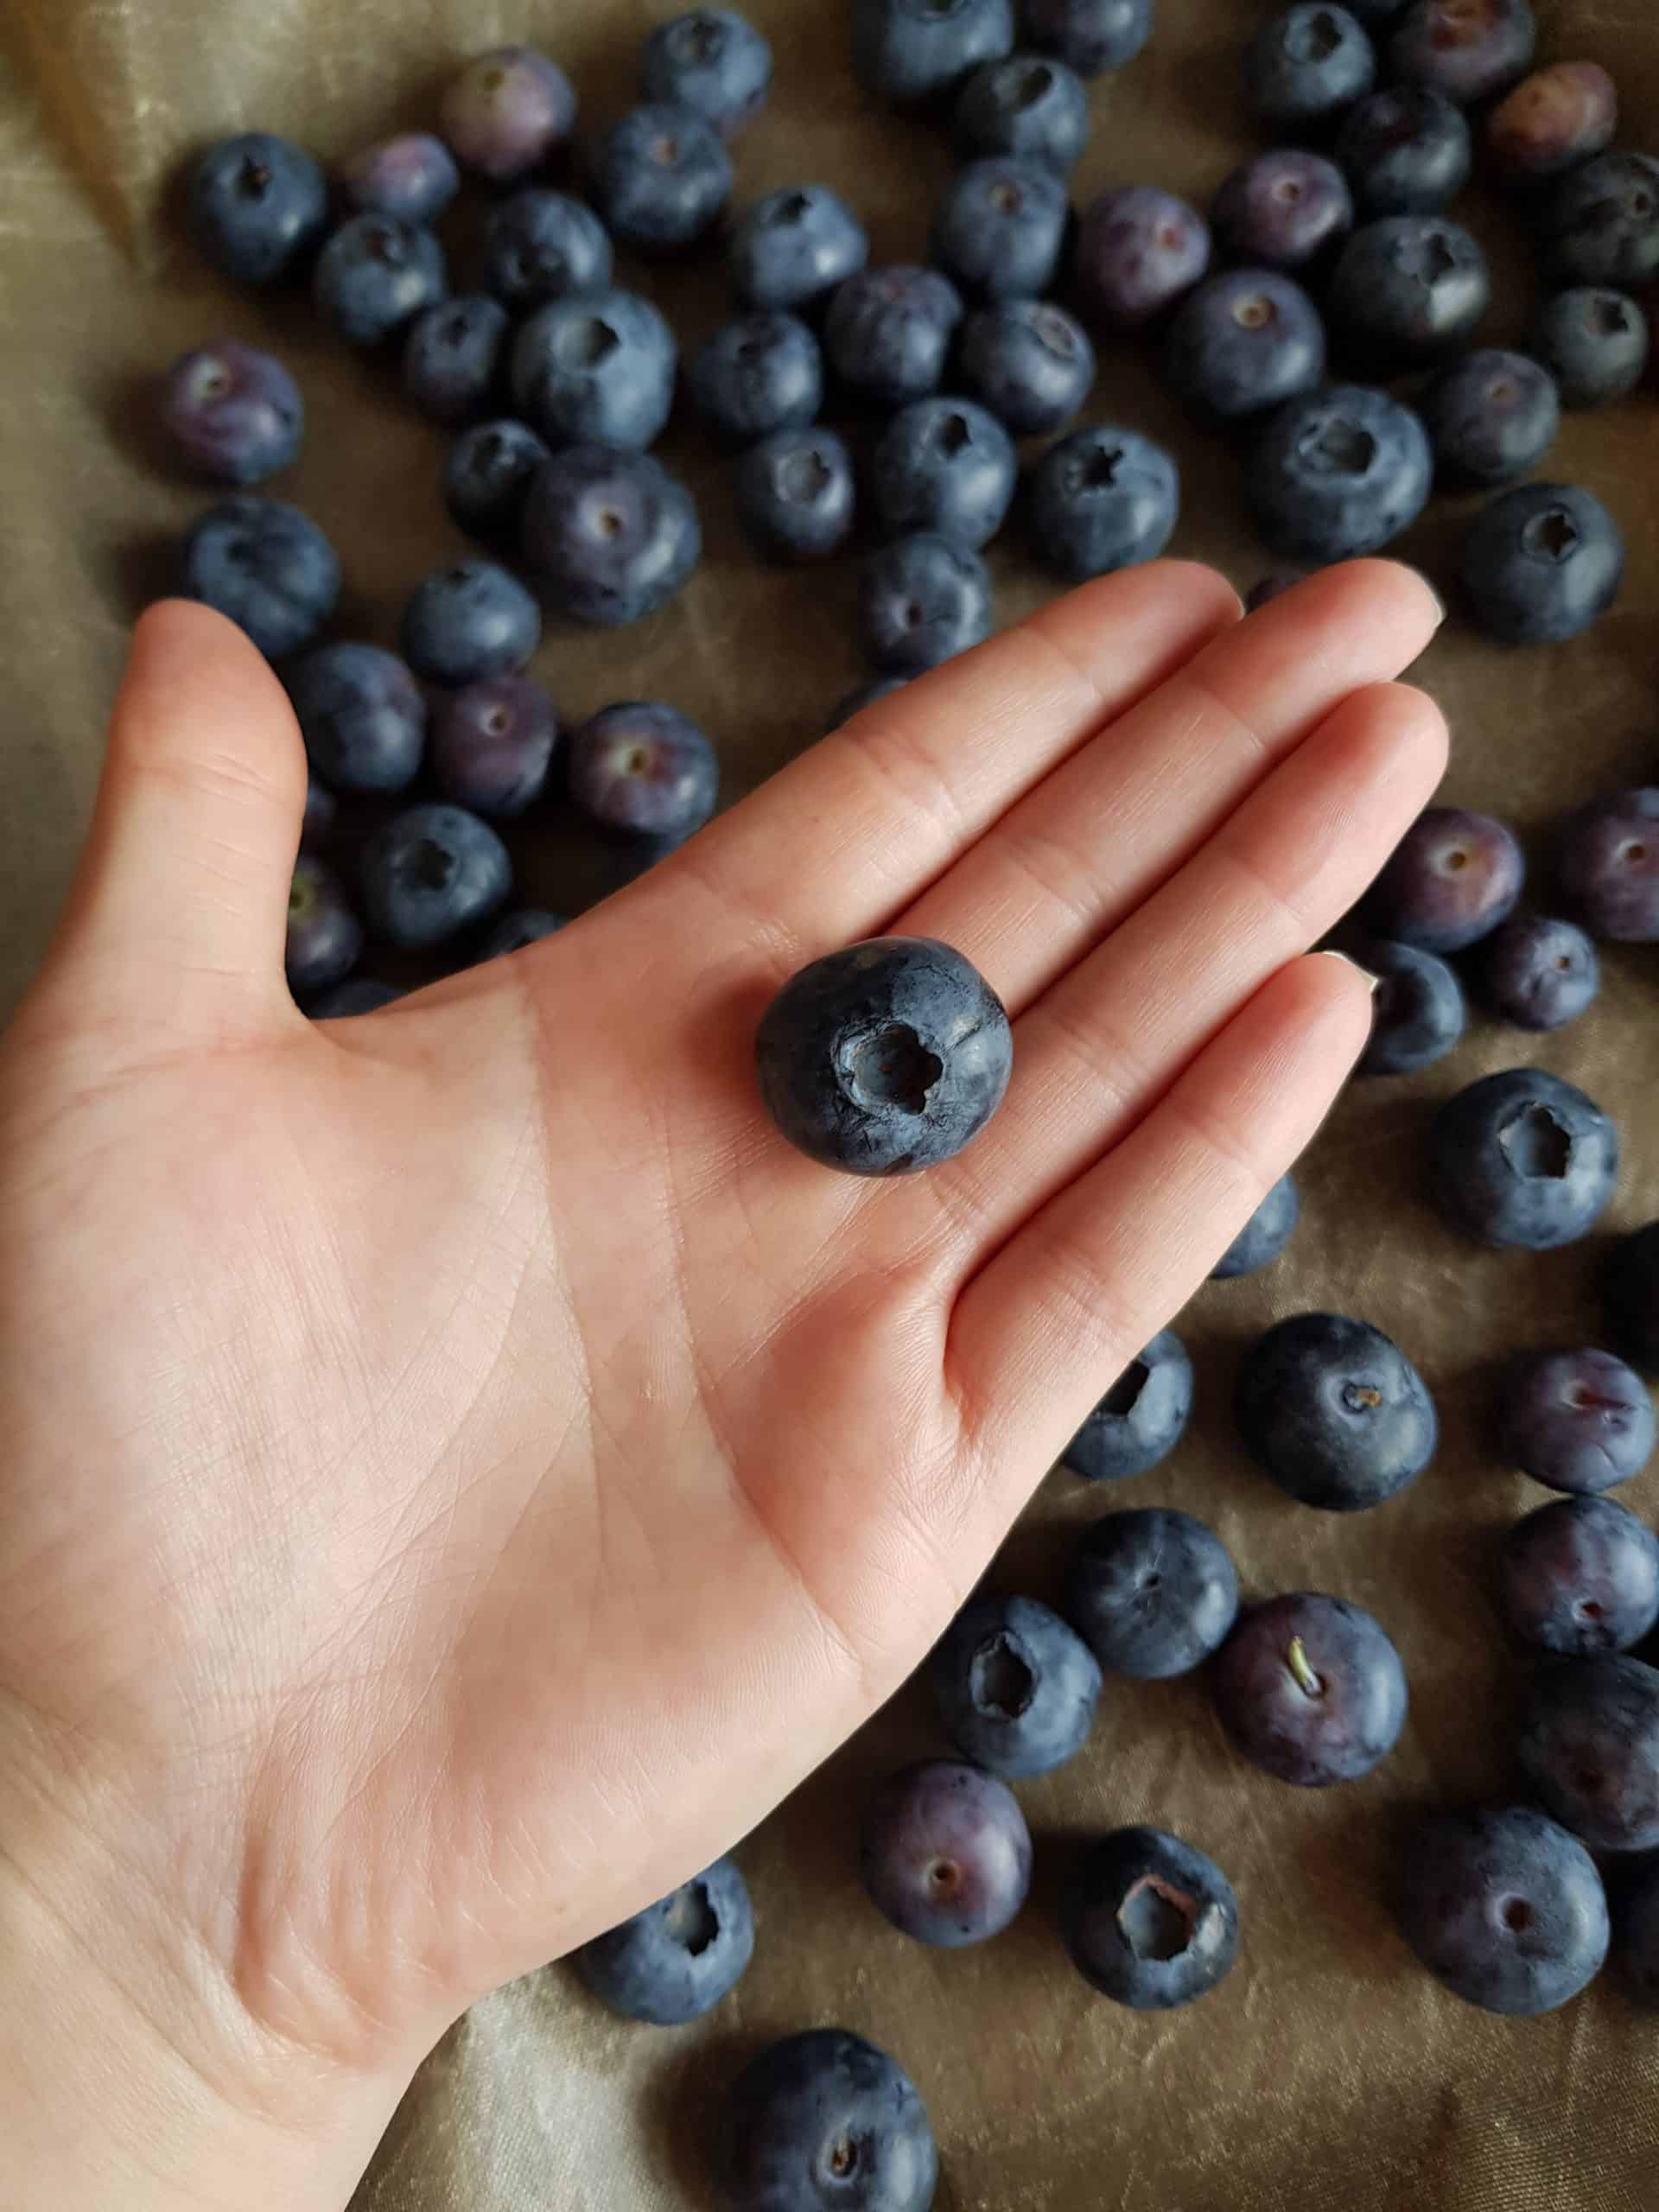 A hand holding a blueberry.